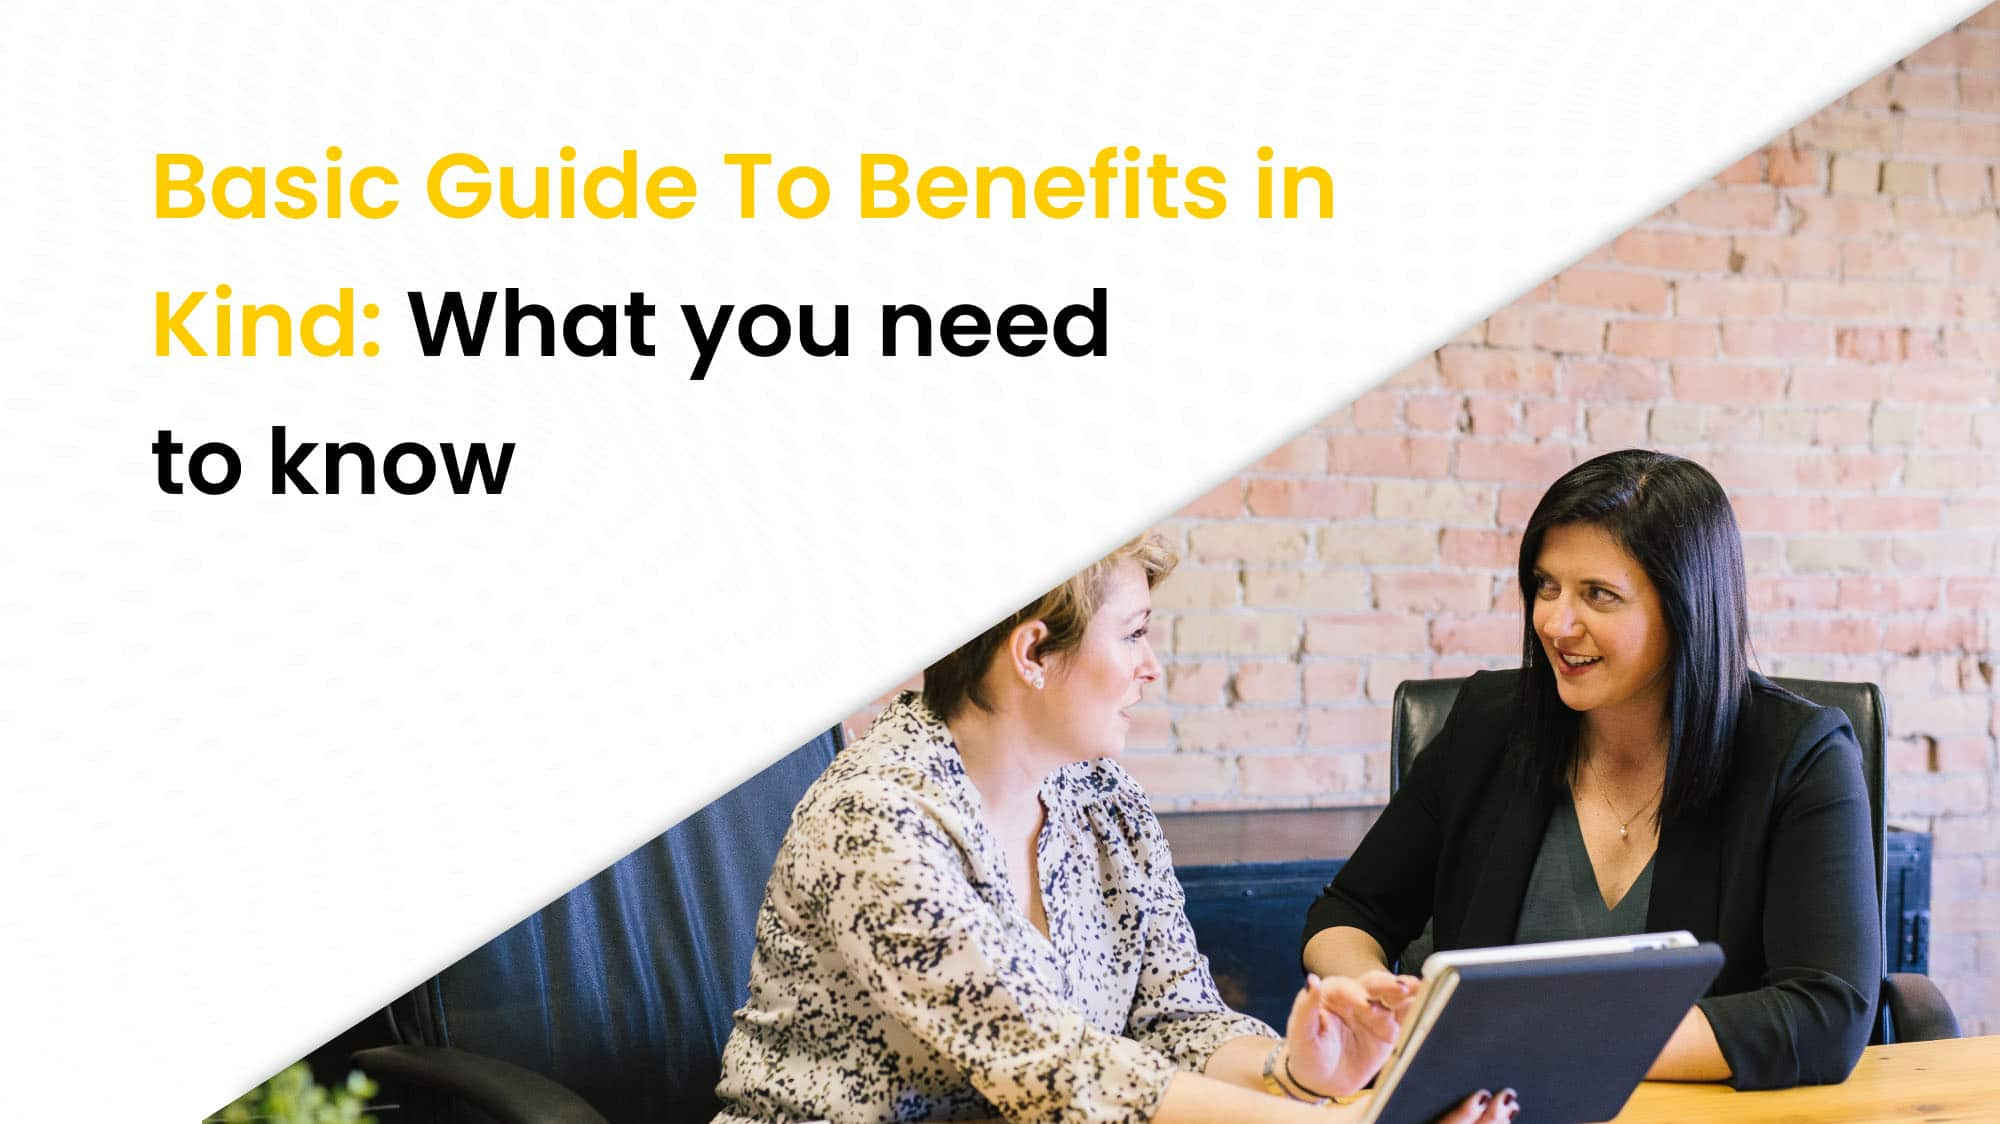 Basic guide to benefits in kind What you need to know